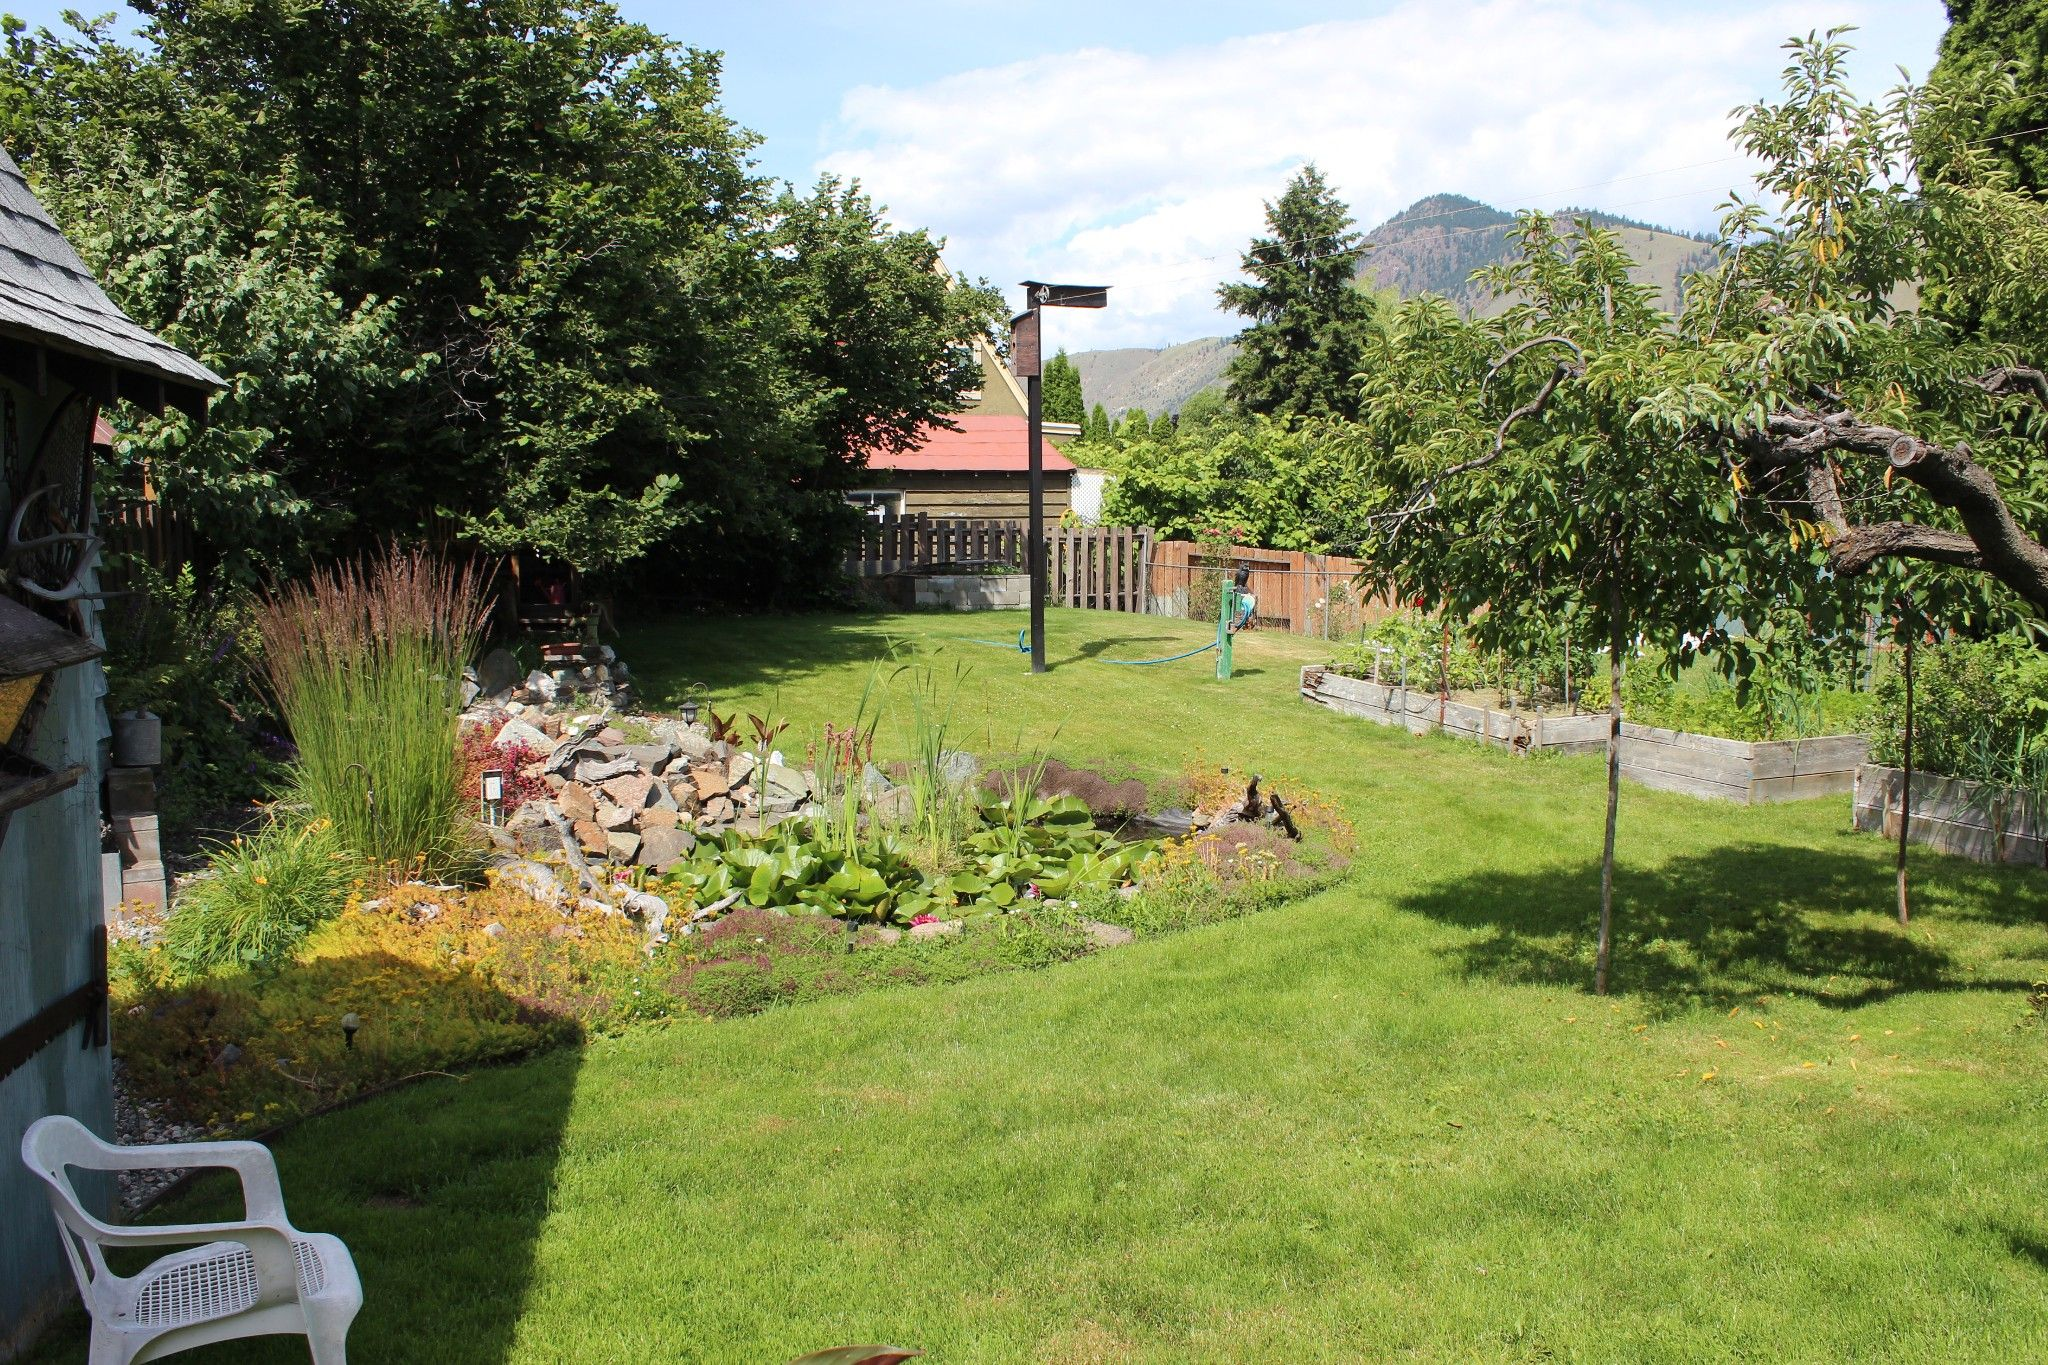 Photo 13: Photos: 98 Chapman Place in Kamloops: Valleyview House for sale : MLS®# 159545